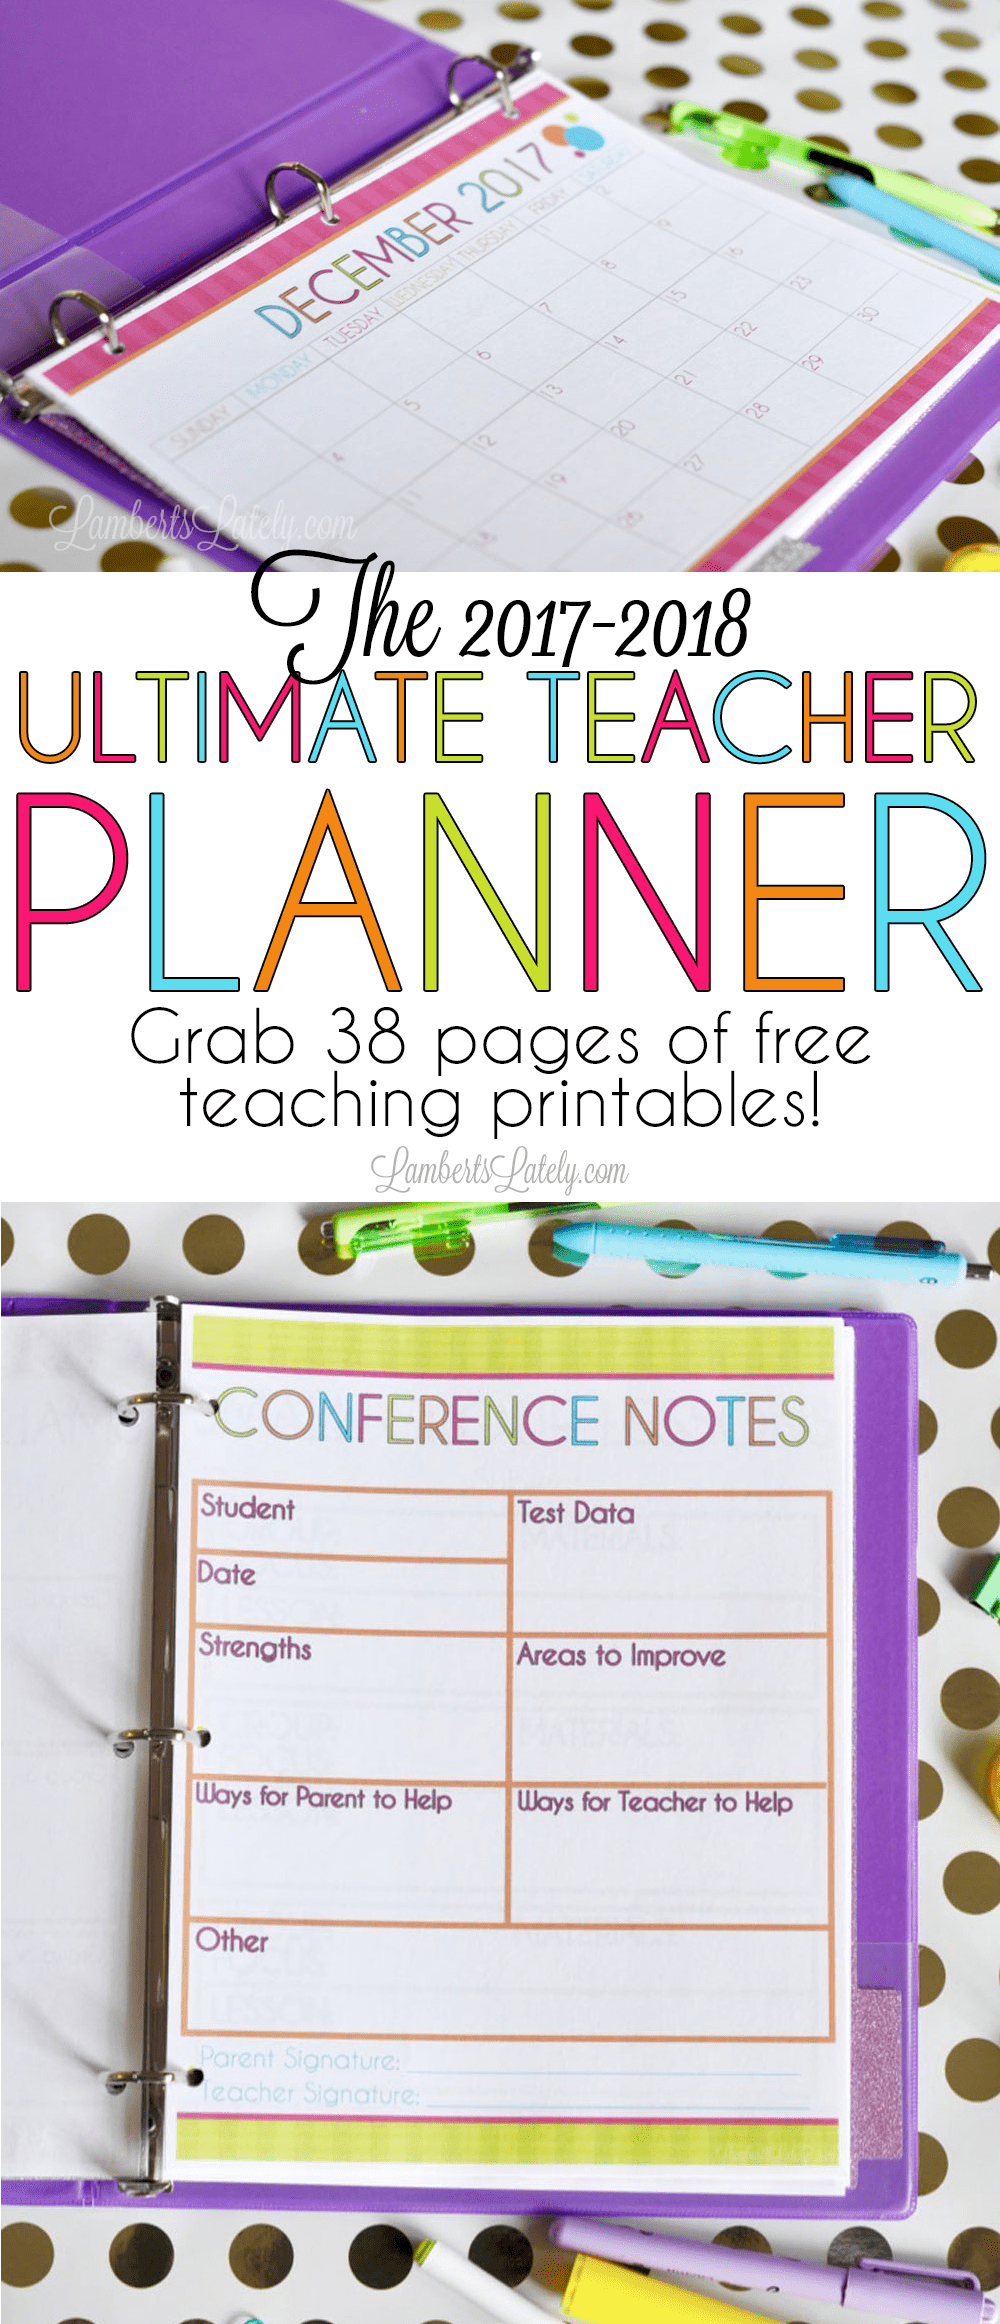 Canny image for free printable teacher planner